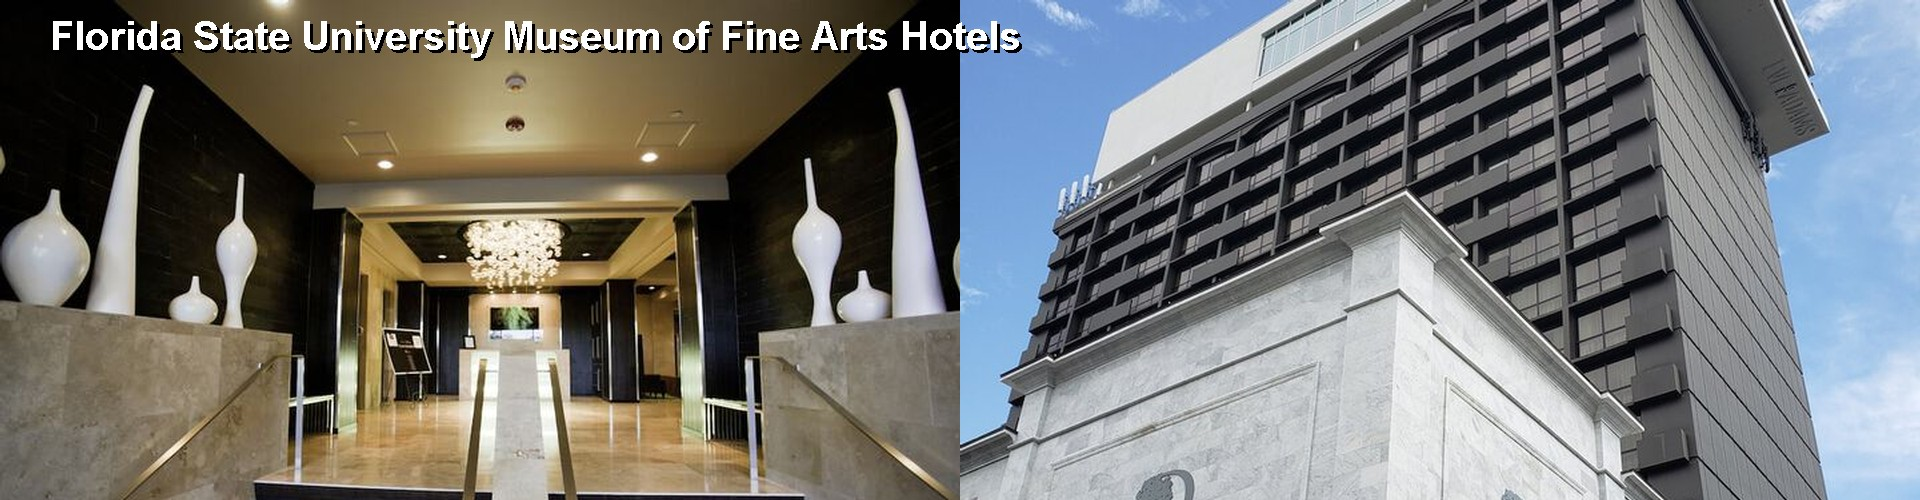 5 Best Hotels near Florida State University Museum of Fine Arts